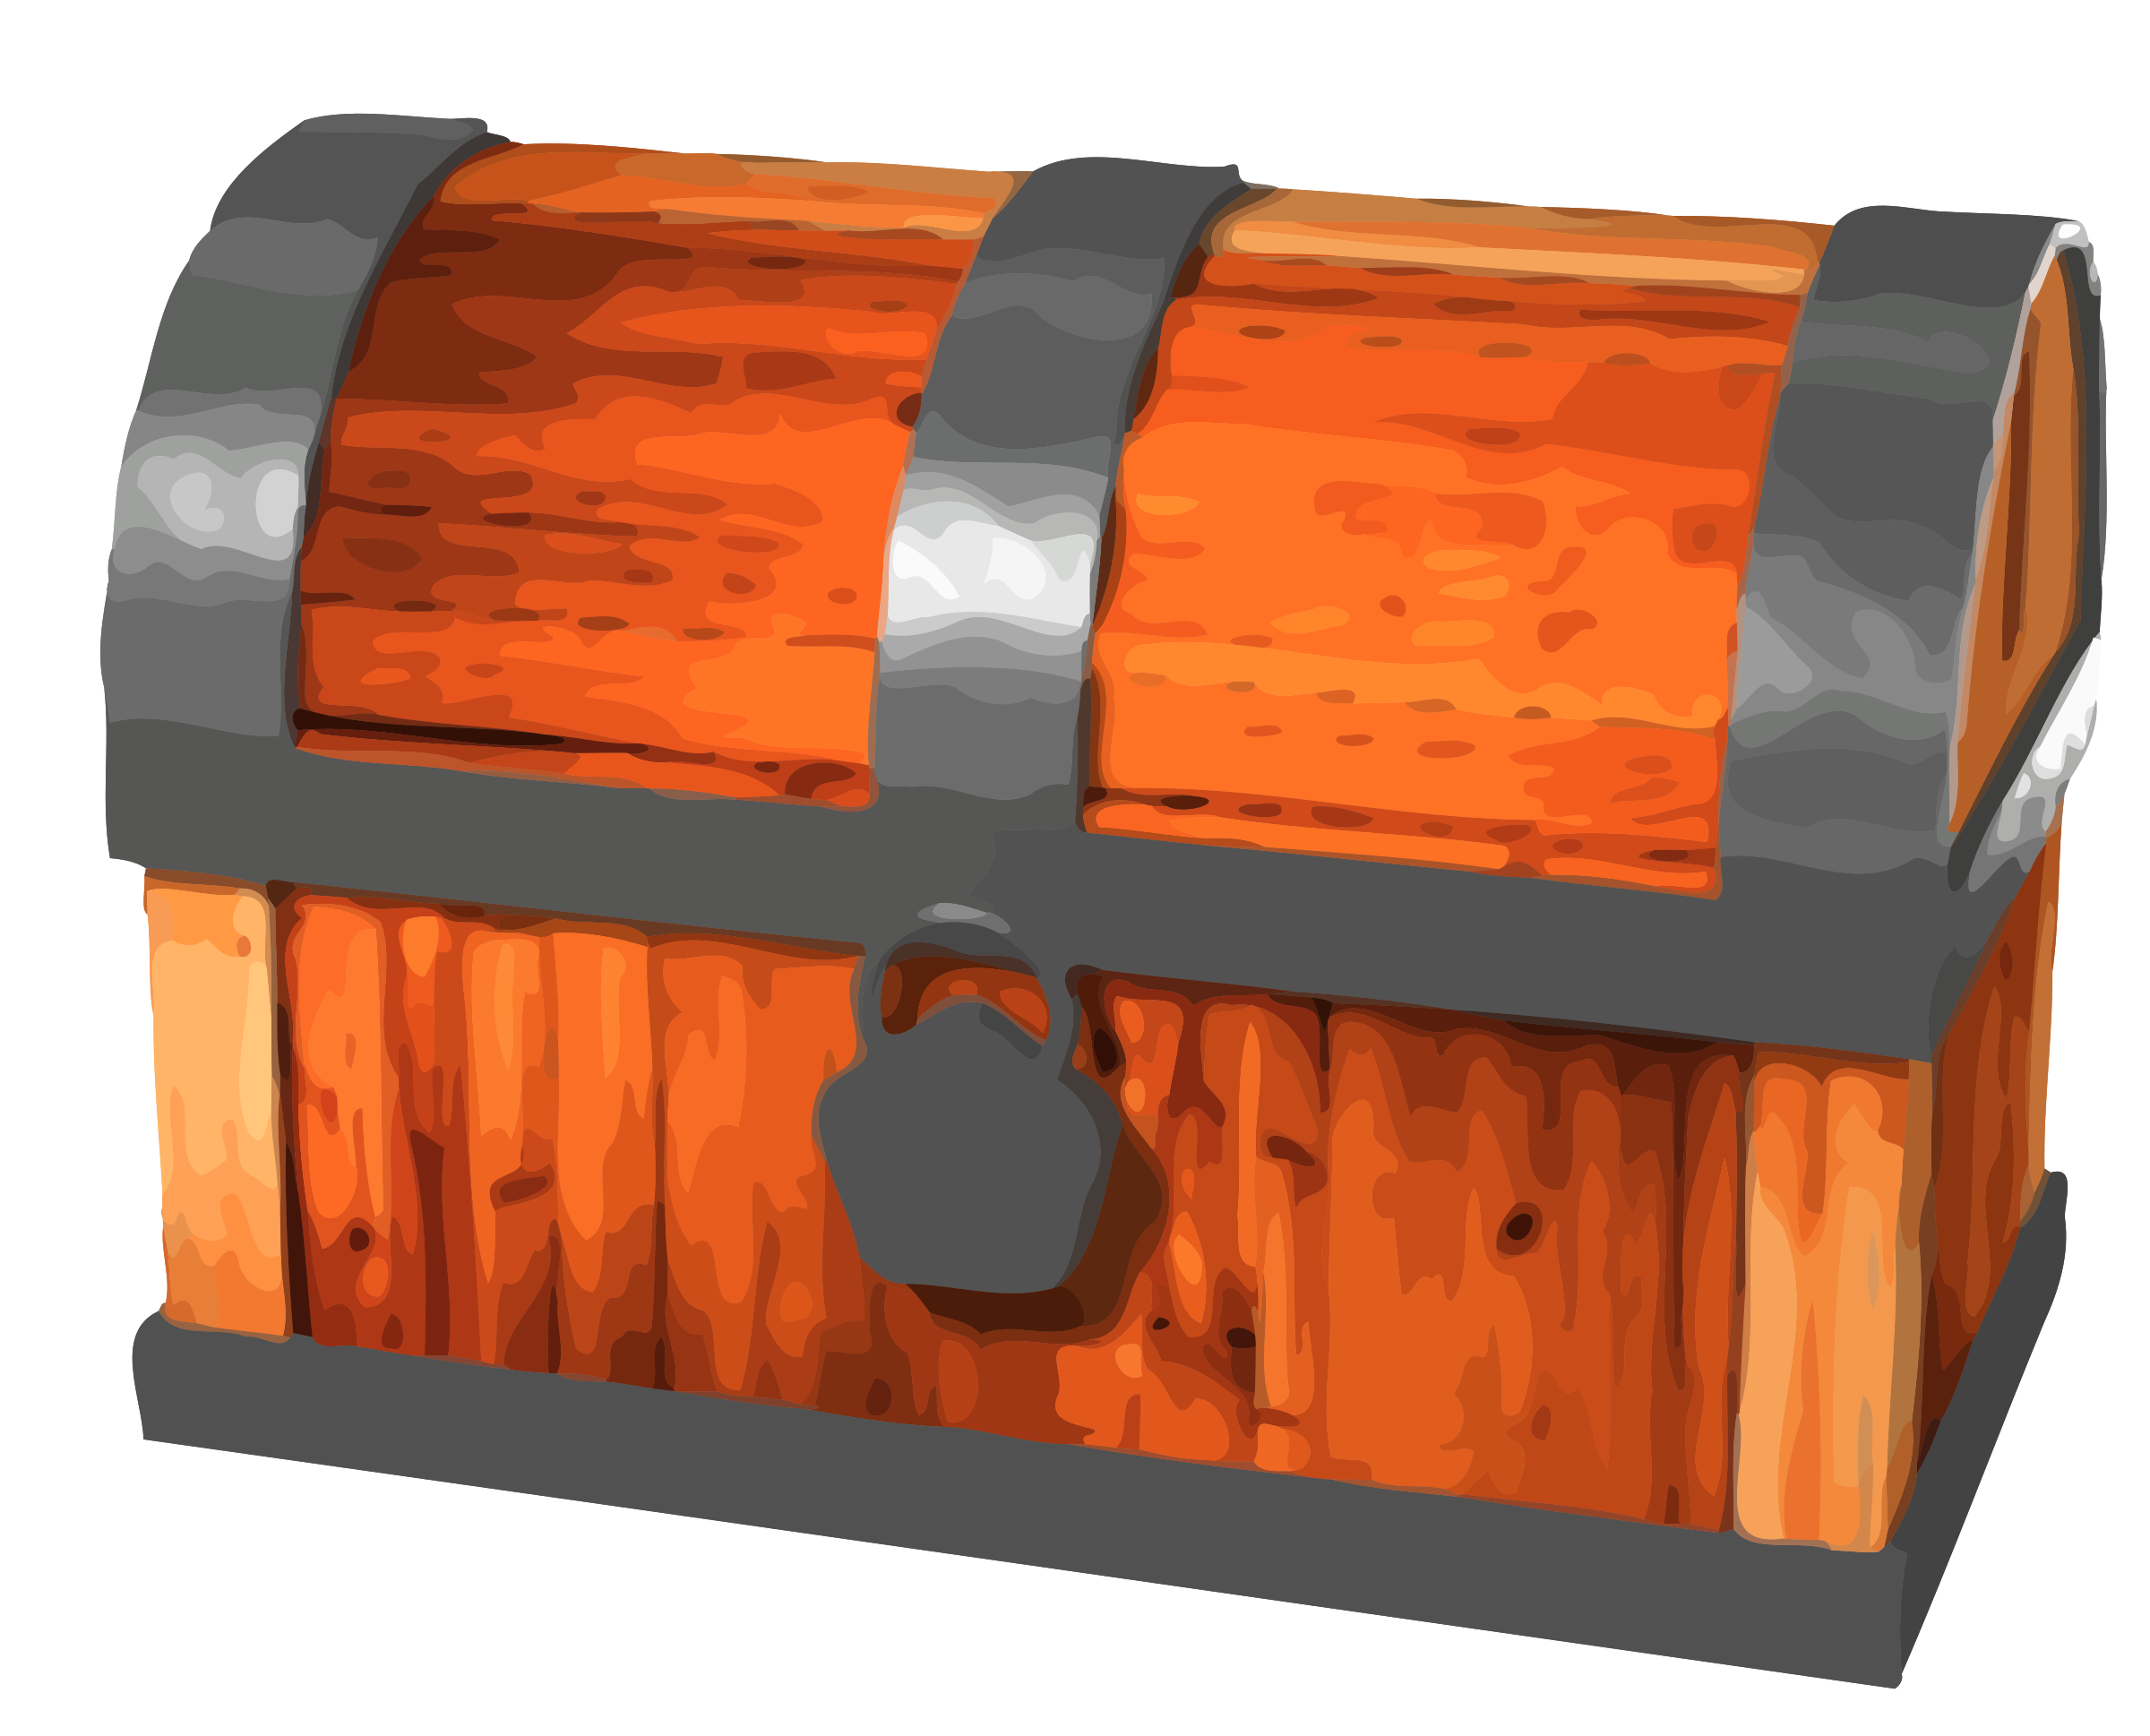 Chest by Firkin